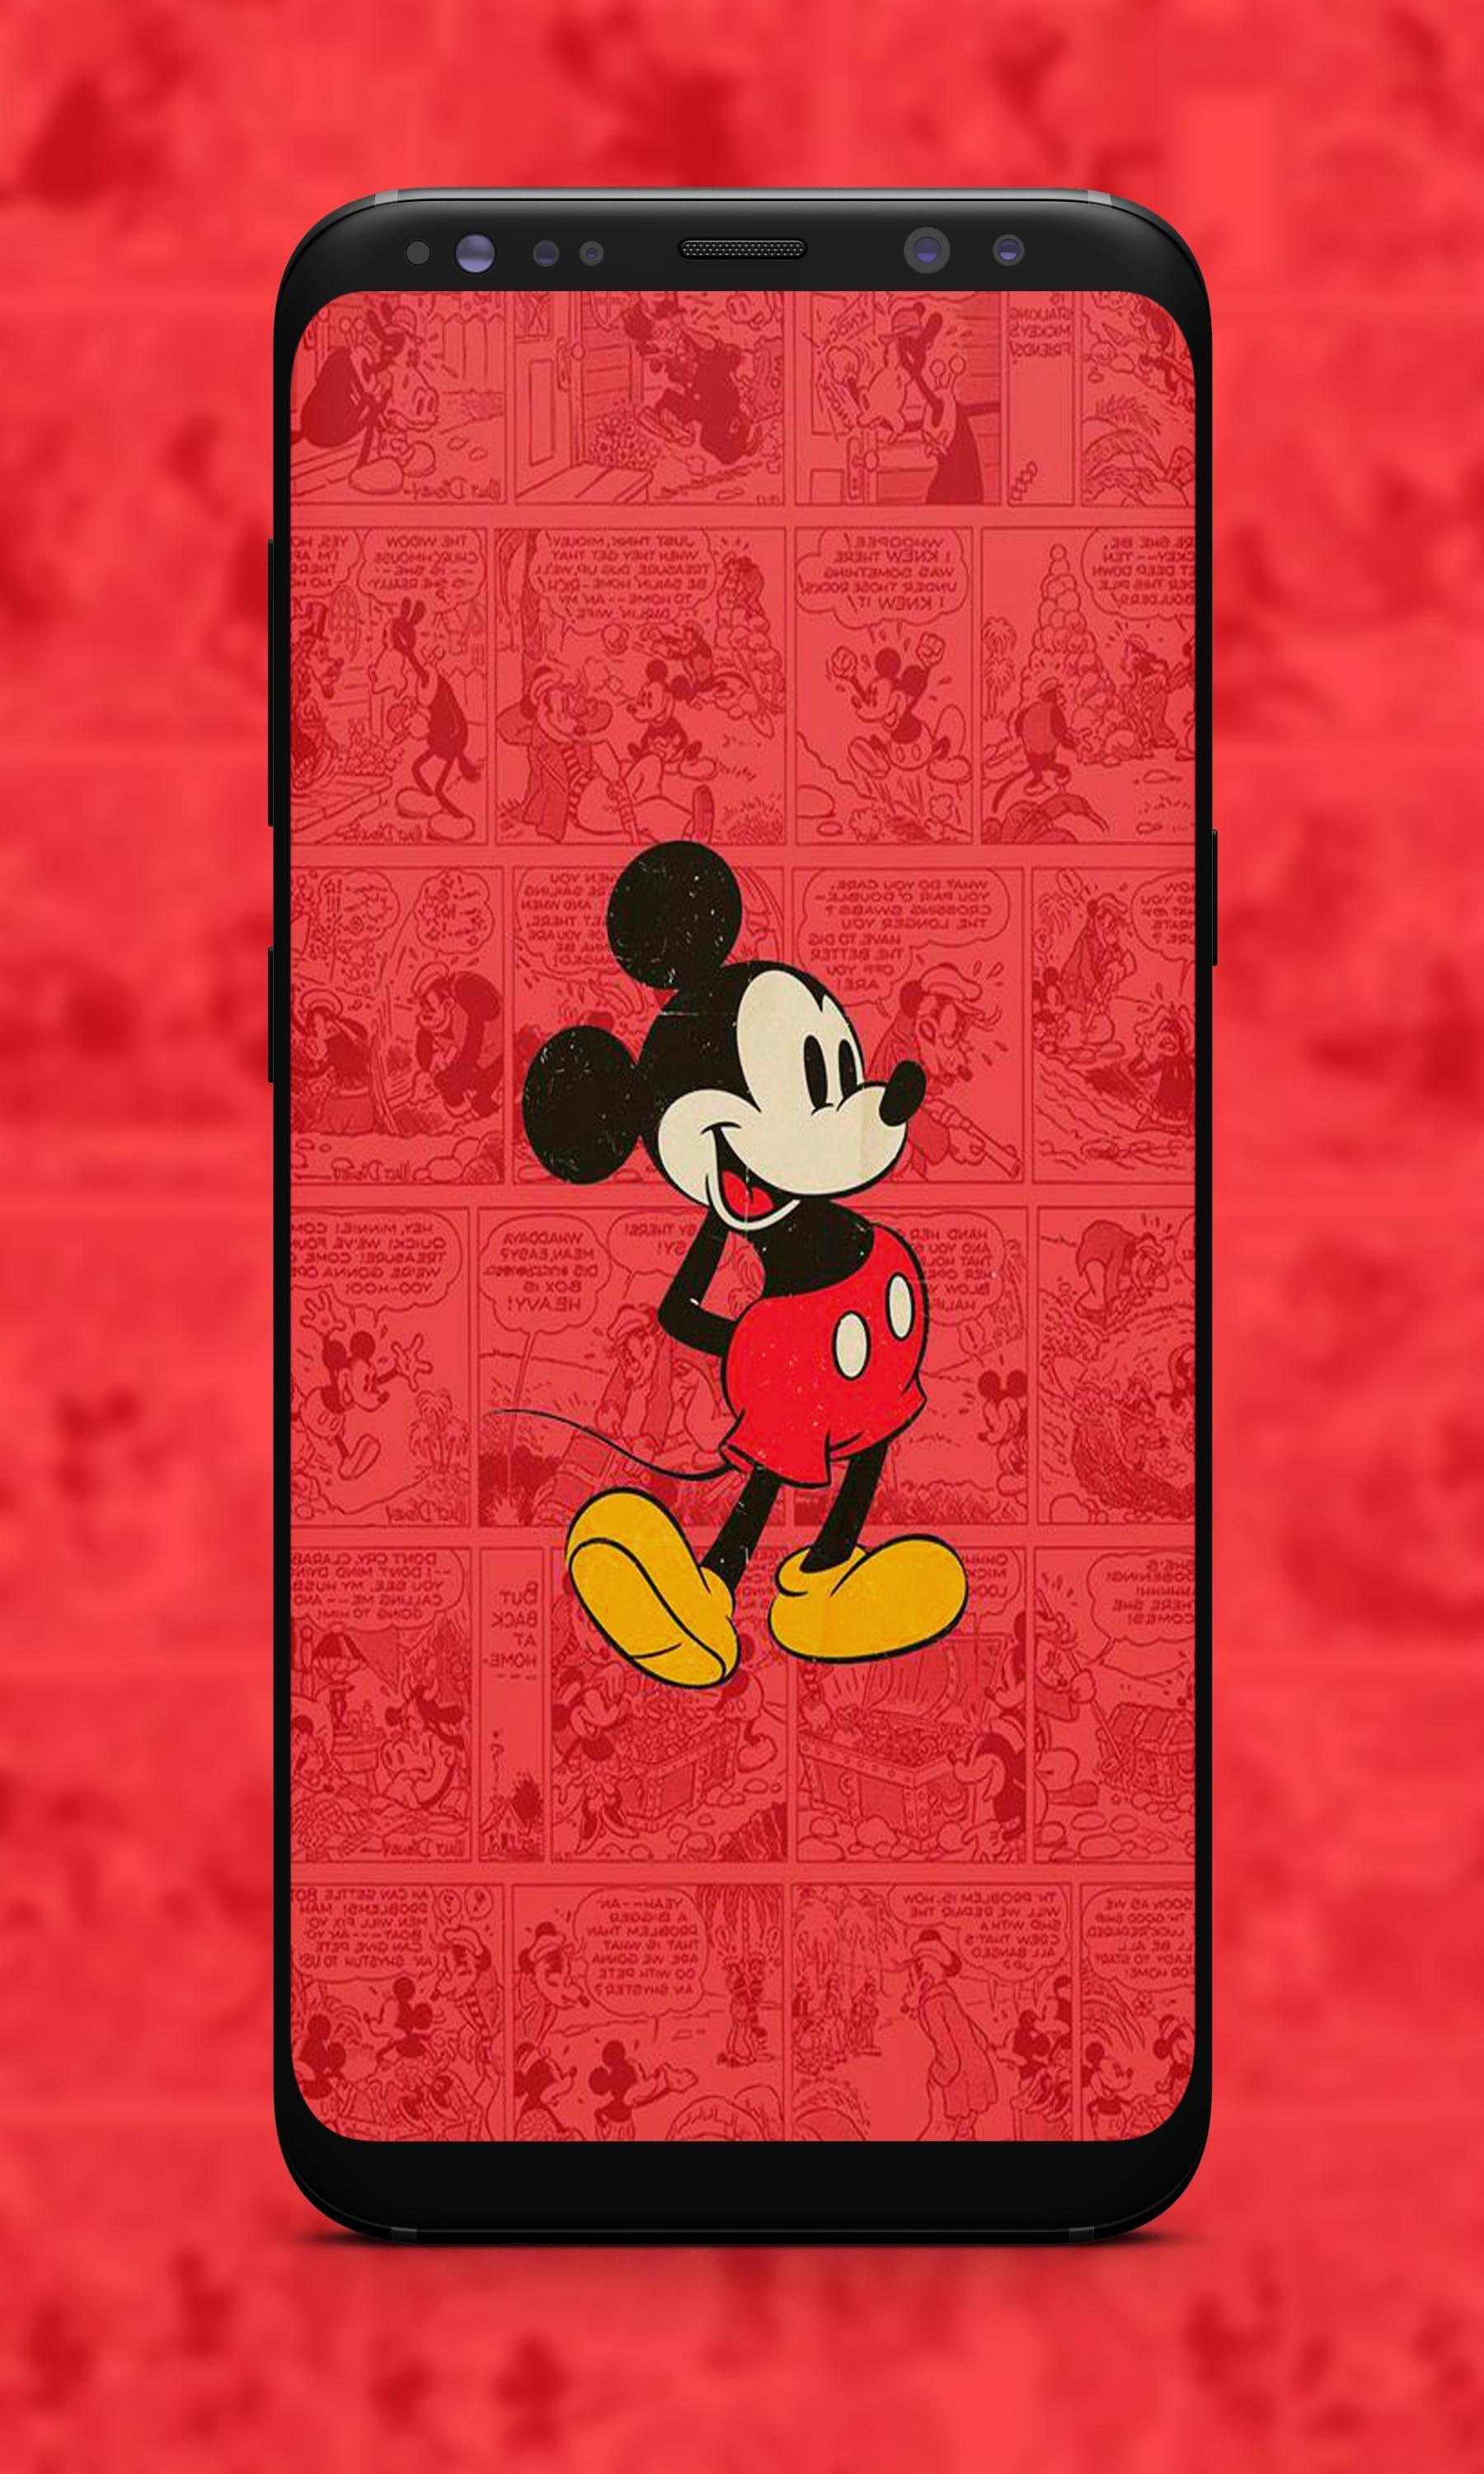 Disney Wallpaper Hd For Android Apk Download